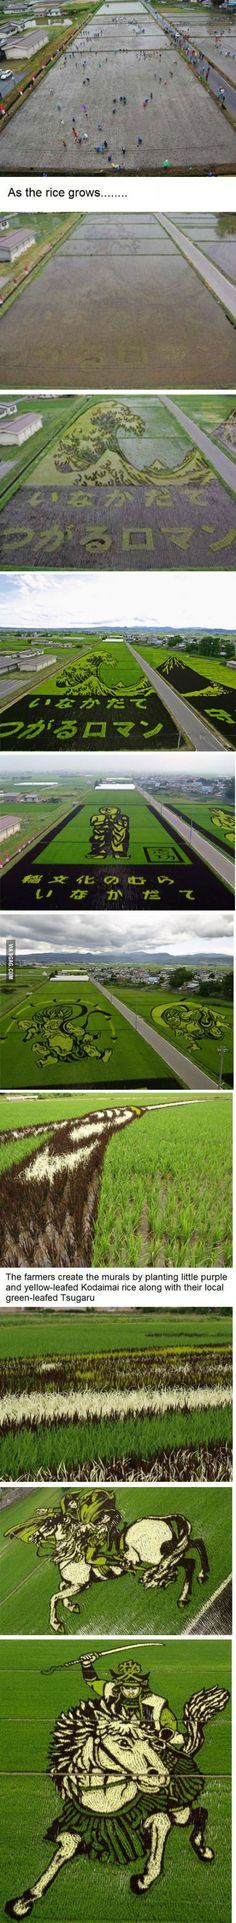 Farmers created murals by planting purple- and yellow-leafed Kodaimai rice alongside local green-leafed Tsugaru rice